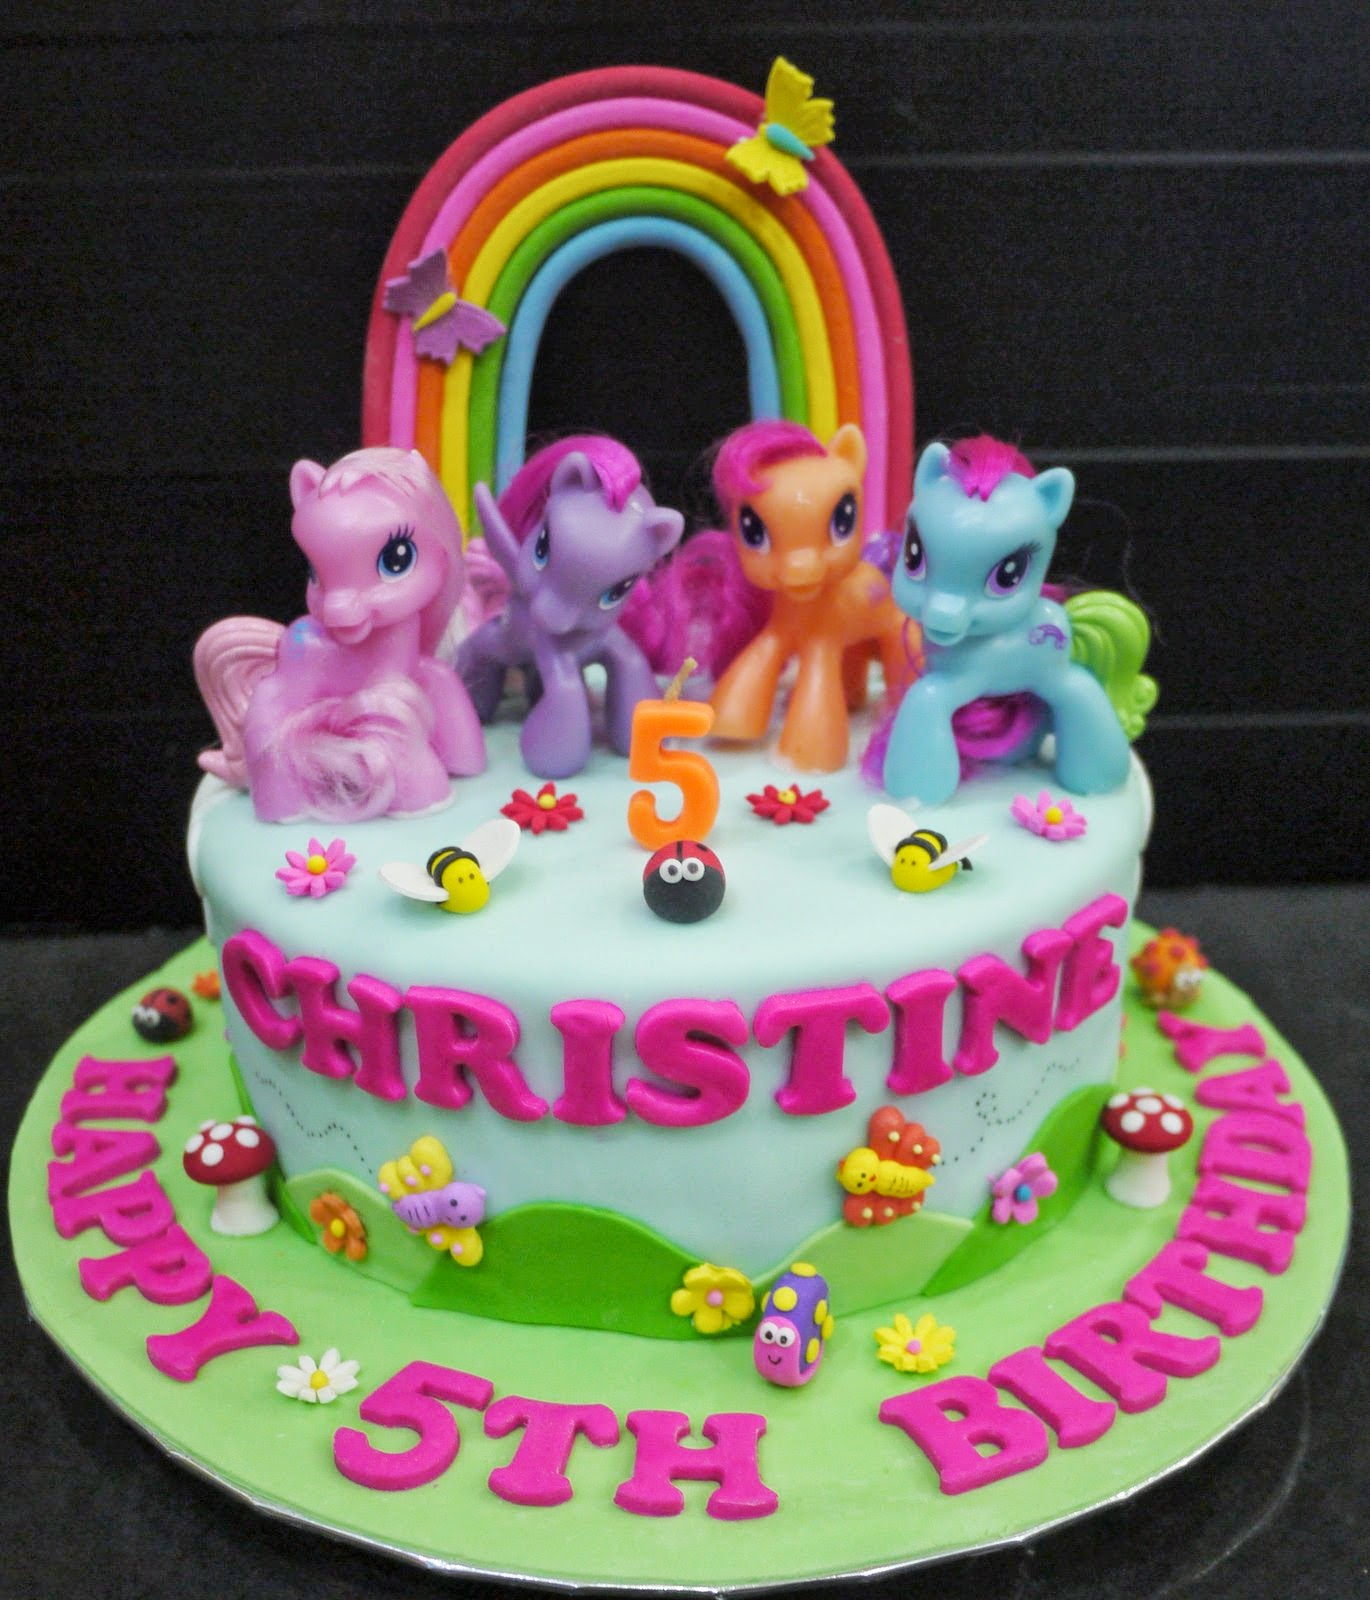 Cupcake Divinity Christines My Little Pony Cake